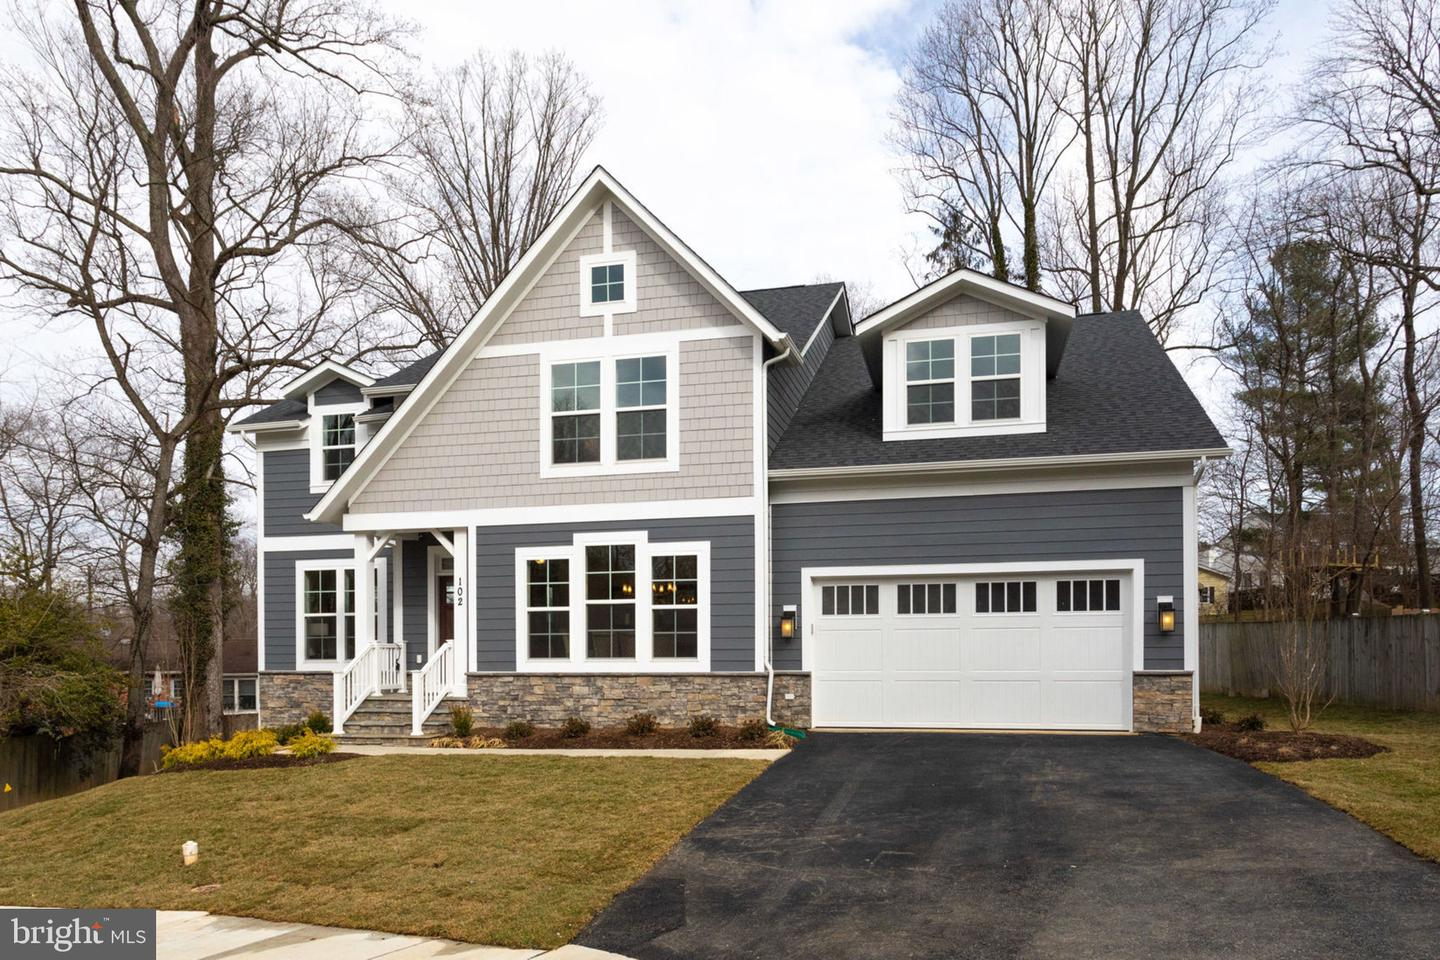 Additional photo for property listing at 102 Sharon Ln NW Vienna, Virginia 22180 United States